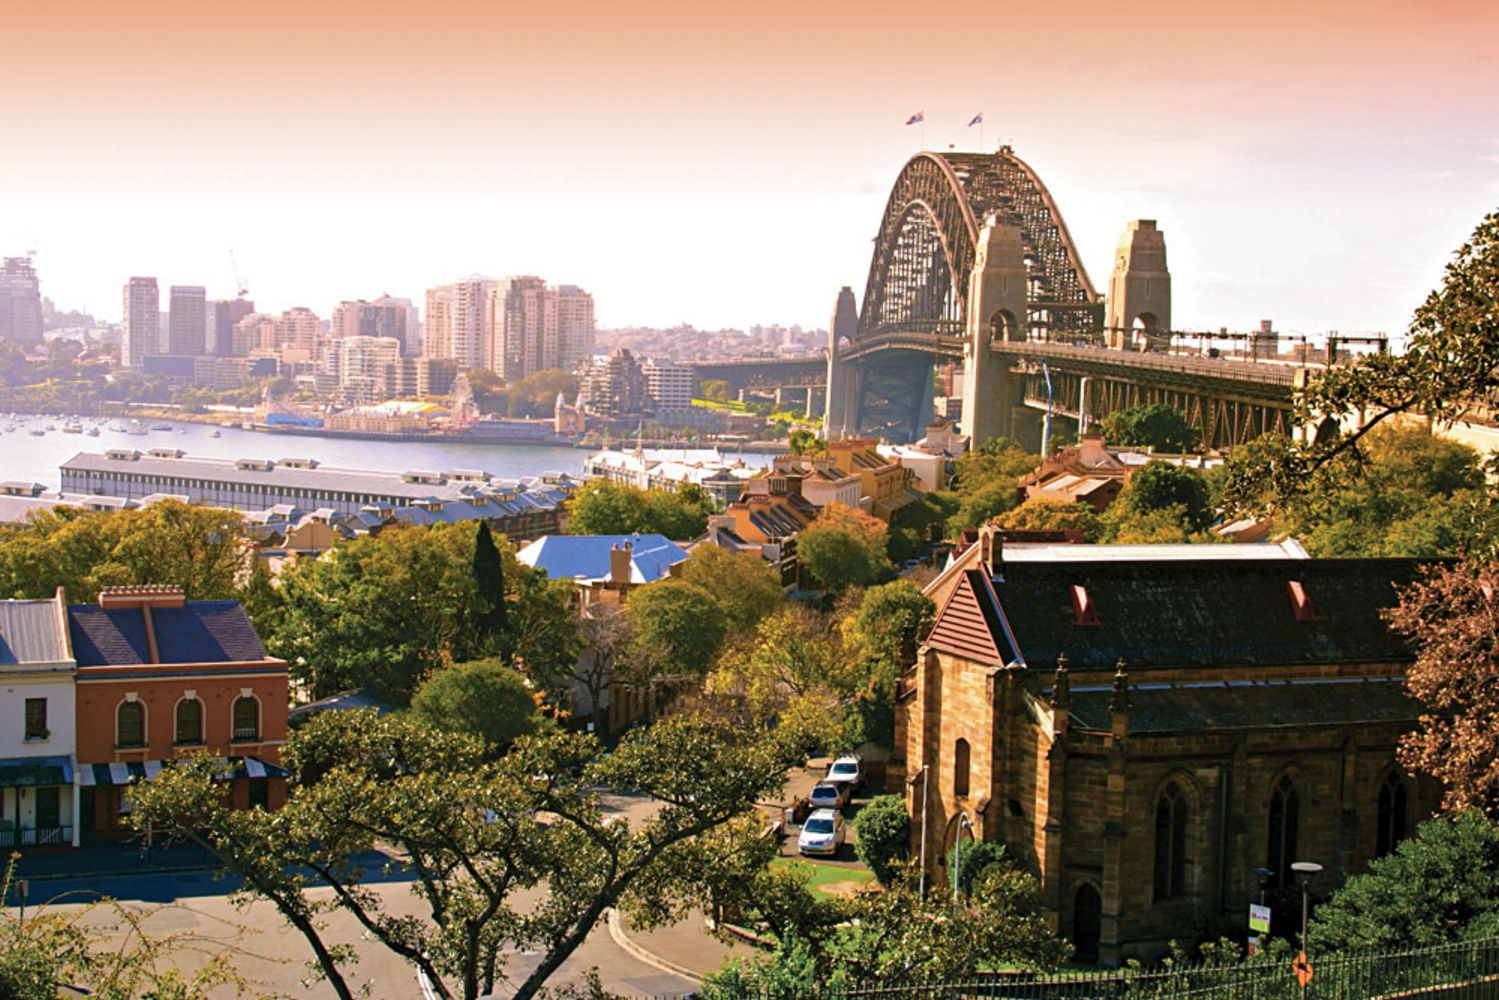 Historic Sydney Rocks area, Sydney, Australia